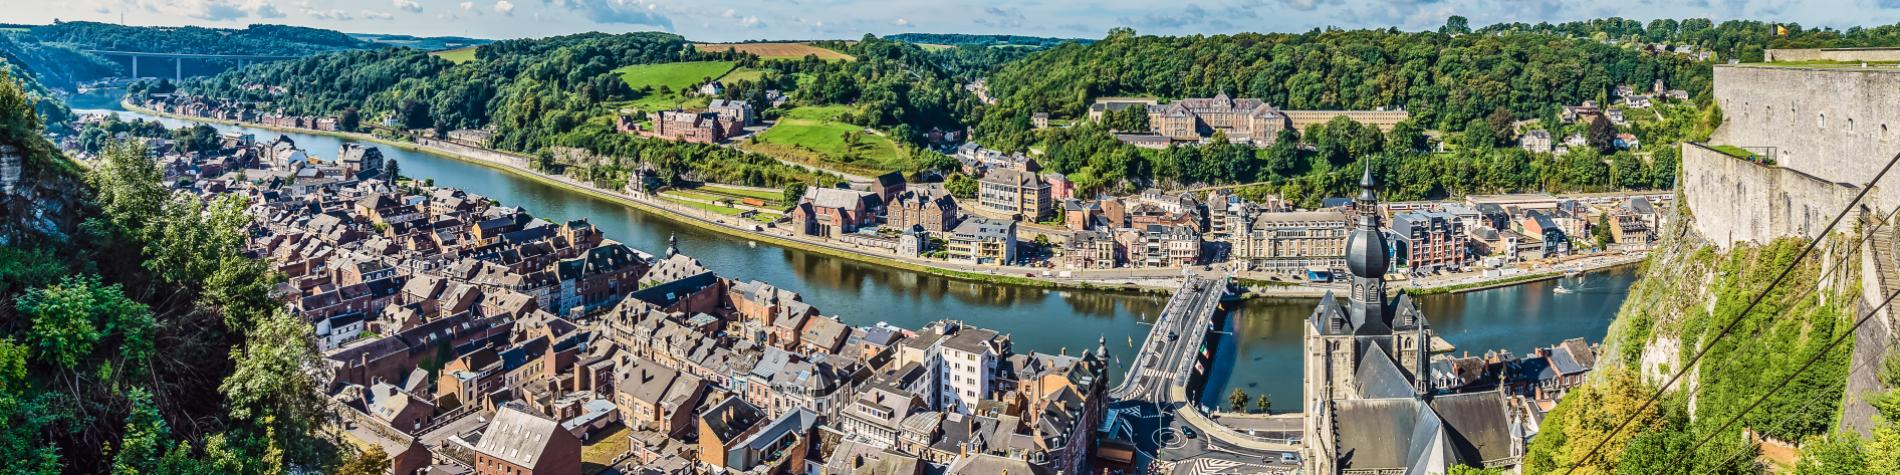 Dinant - Panorama - Ville - Citadelle - Collégiale